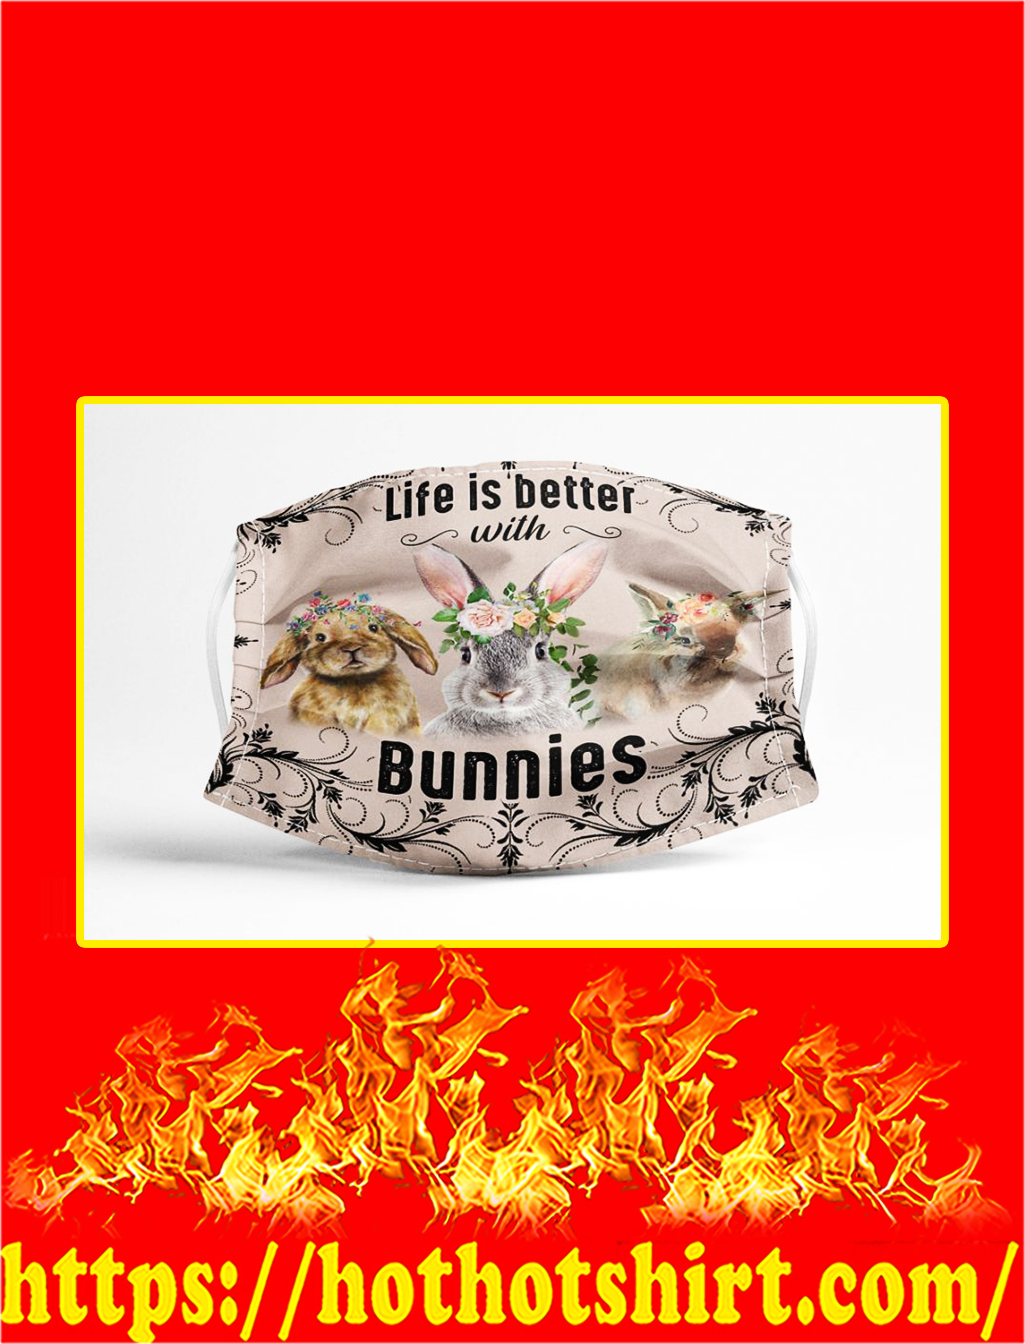 Life is better with bunnies face mask - pic 1